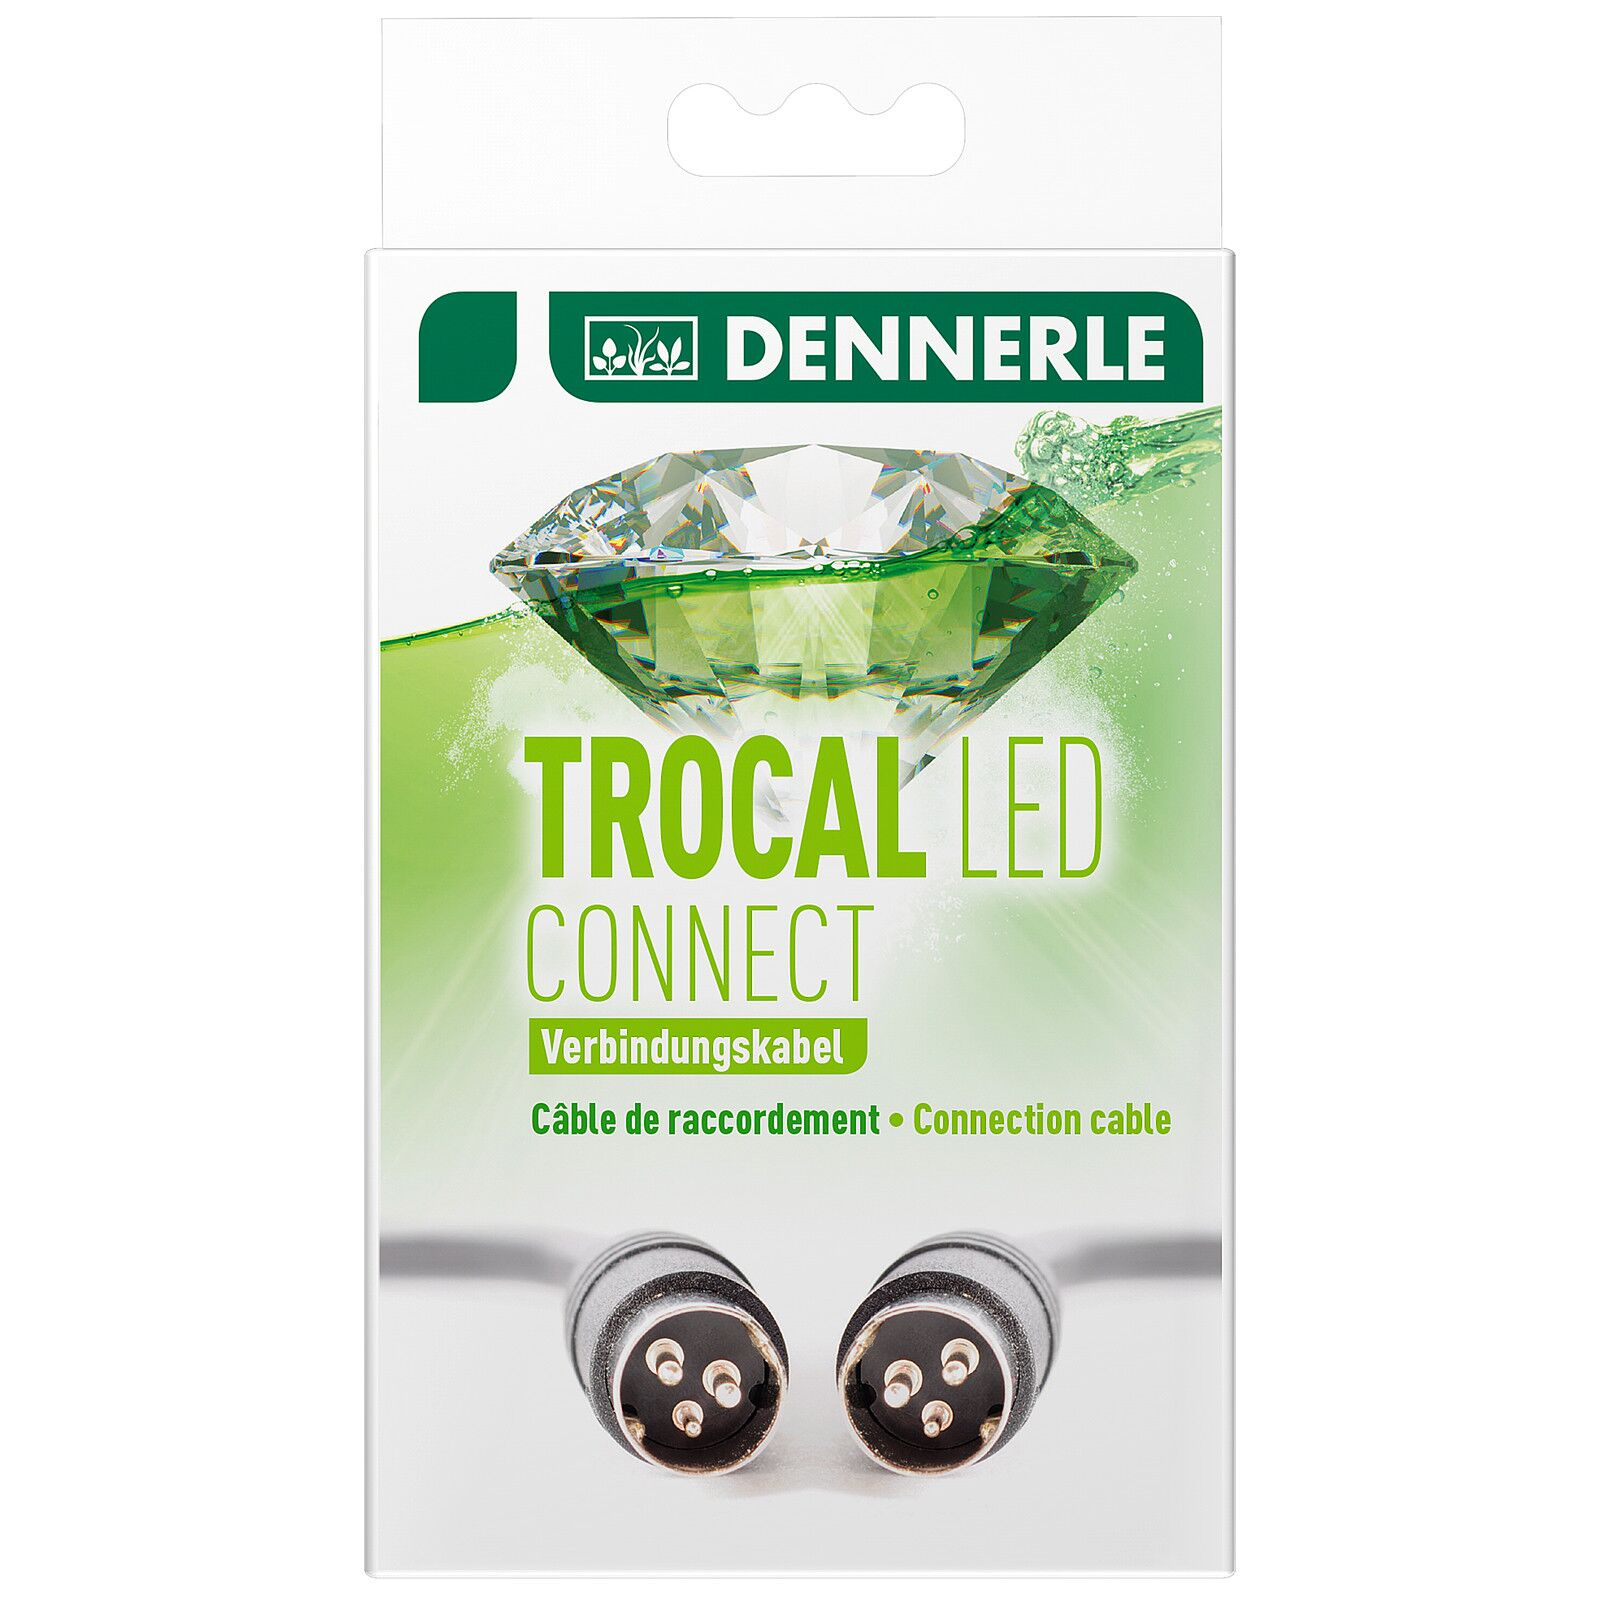 Eclairage Led Dennerle Dennerle Trocal Led Connect